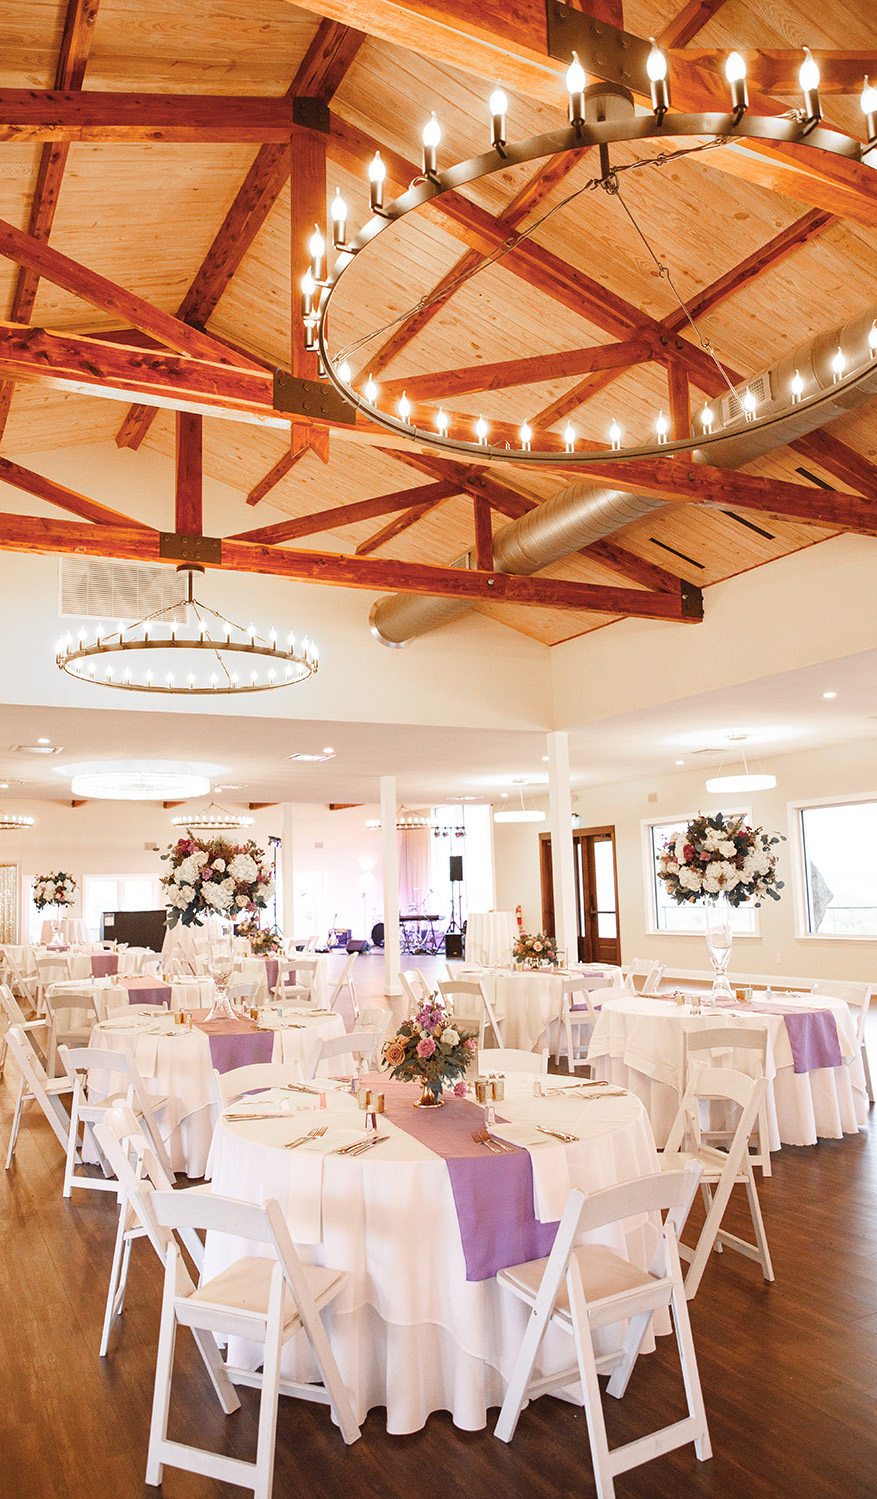 Charming lush white and lilac floral table reception decor designed by Malleret Designs.